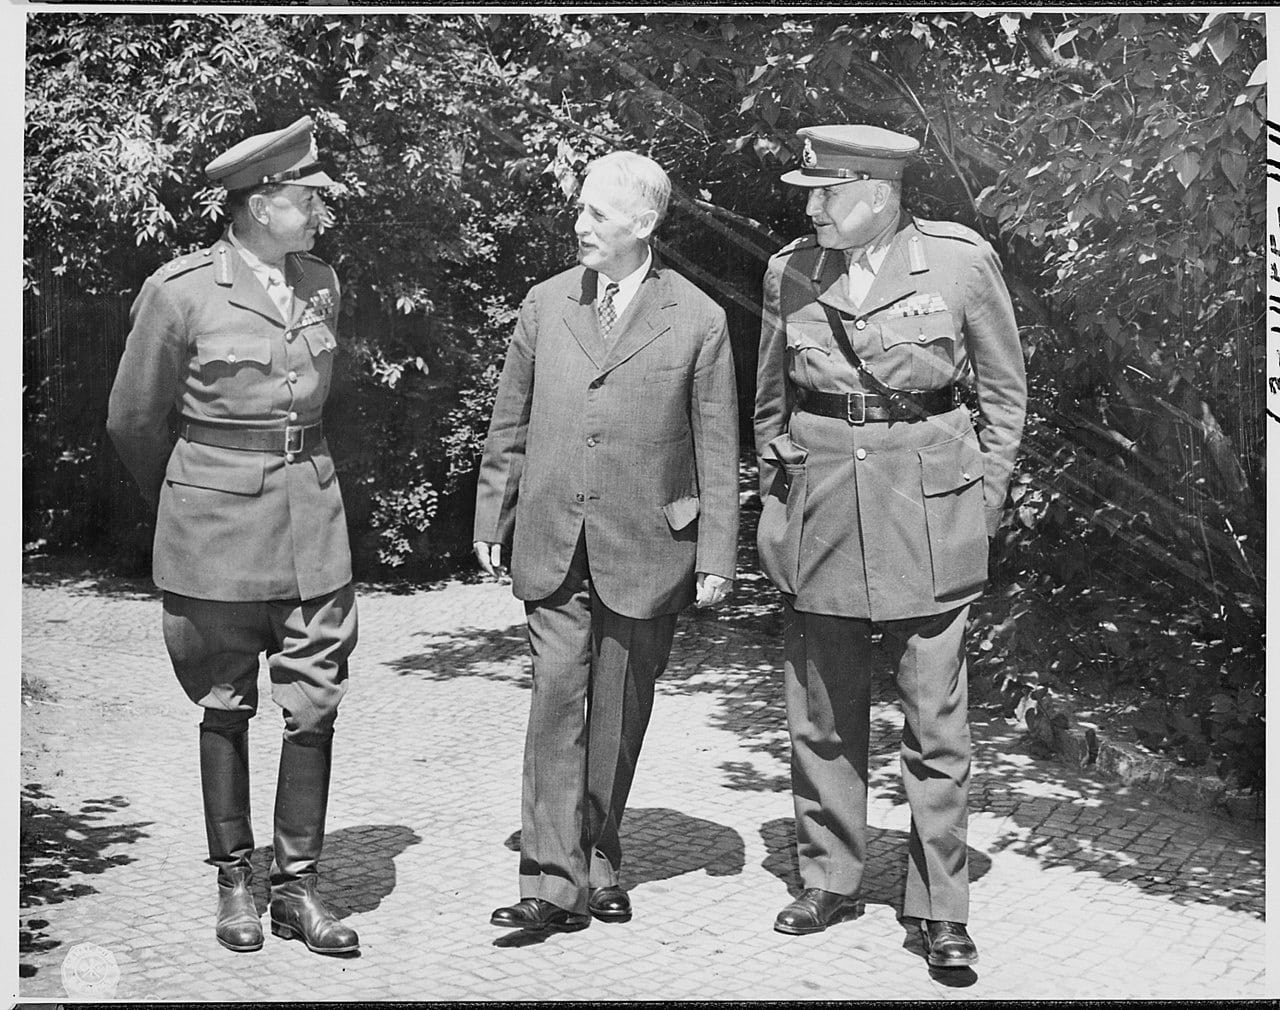 The Potsdam Conference - July 22nd 1945 - US Secretary of War Henry Stimson chatting with British Field Marshals Alexander and Maitland Wilson